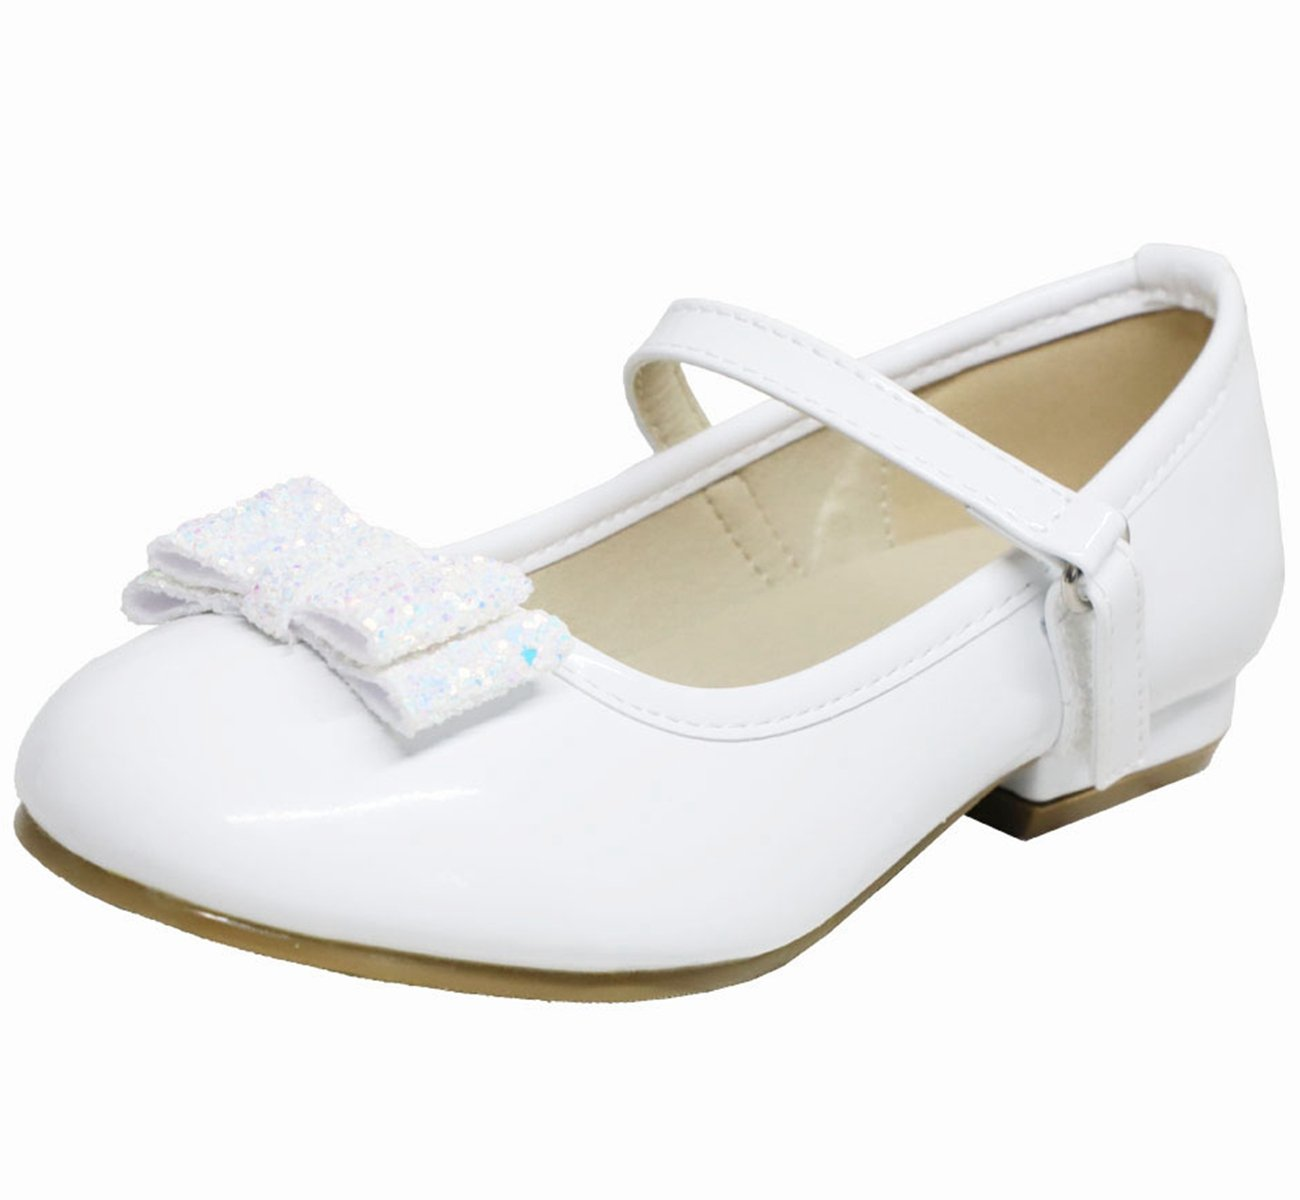 Girls Casual Flats Girls Flats Shoes Girls Dress Shoes Ballerina Ballet Low Heels Mary Jane Sandals With Glitter Bow For Wedding,Party,Event.(Toddler/Little/Big Kid)(3 M US Little Kid White)